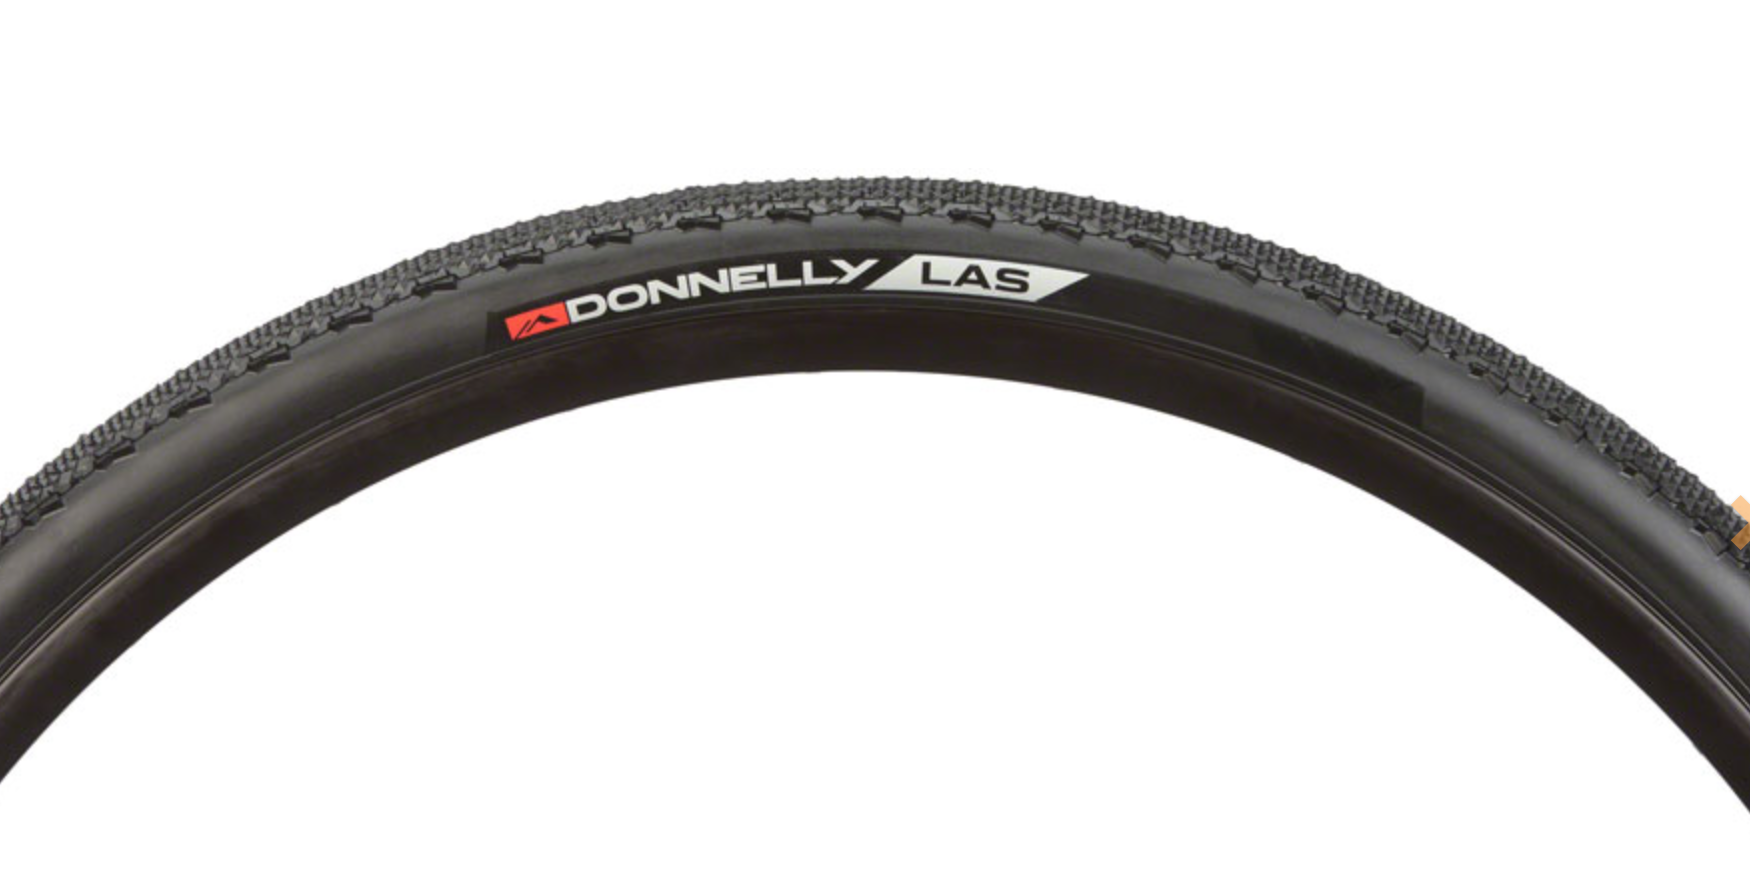 Donnelly Sports Donnelly Sports LAS Tire - 700 x 33, Clincher, Folding, Black, 120tpi